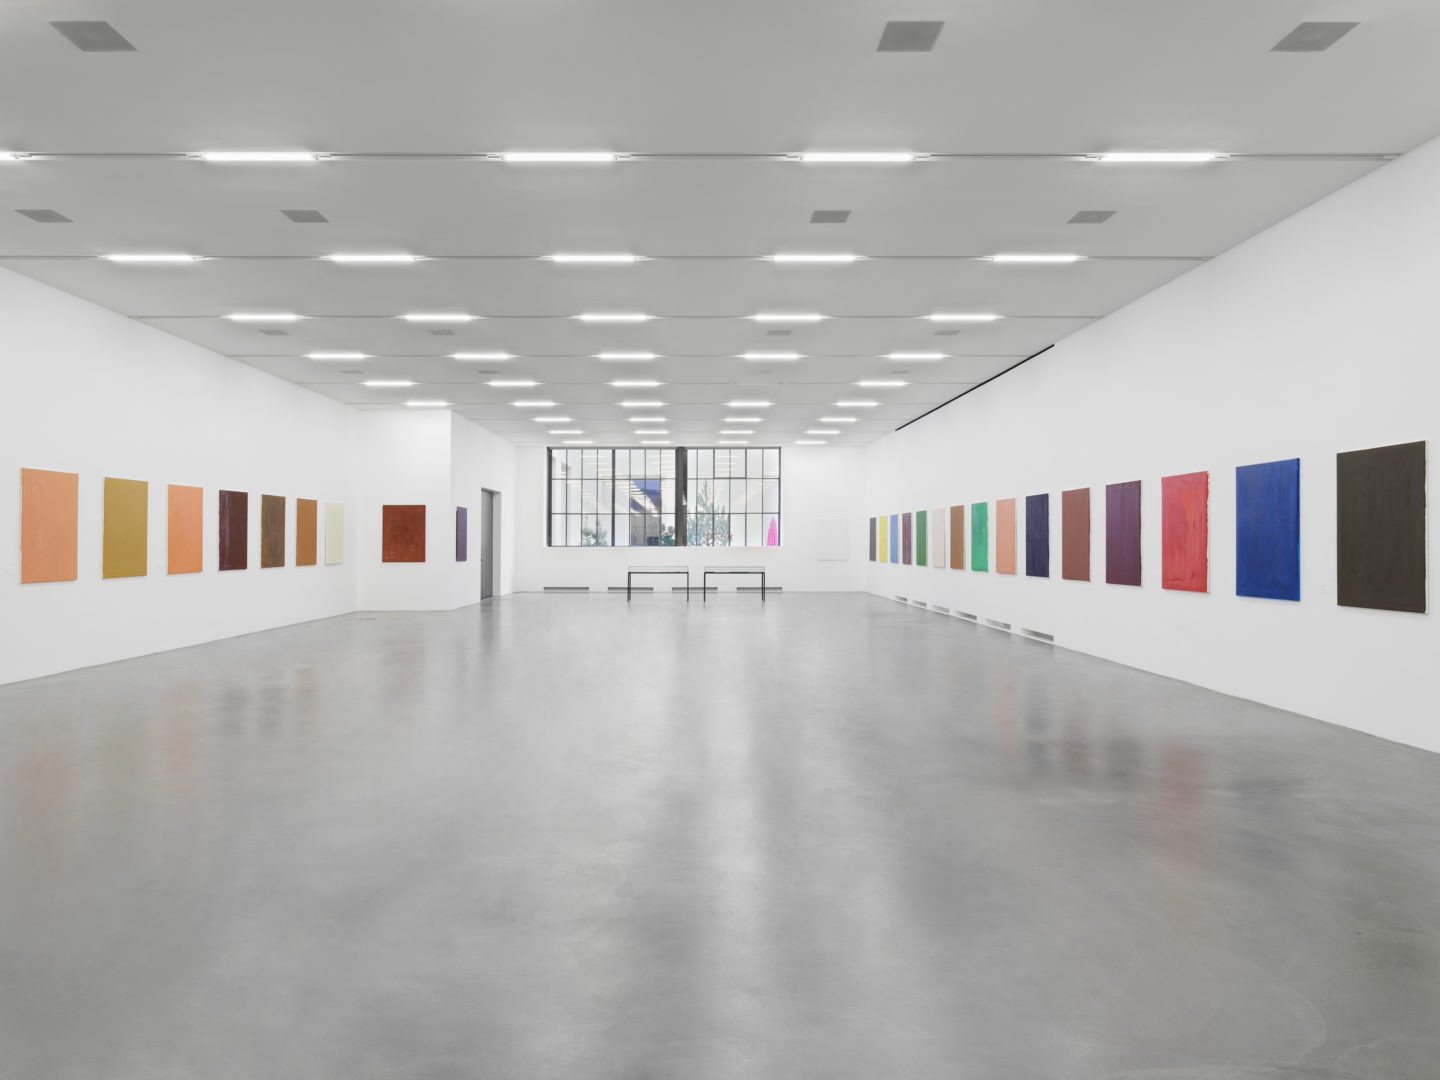 Maria Eichhorn, 72 Bilder (1992–93), 72 monochrome painted canvases, name tags, labeling on the reverse side of the canvases, each 123 x 93 cm, vitrine, Sammlung Migros Museum für Gegenwartskunst, photo: Stefan Altenburger Photography, Zurich © ProLitteris, Zürich